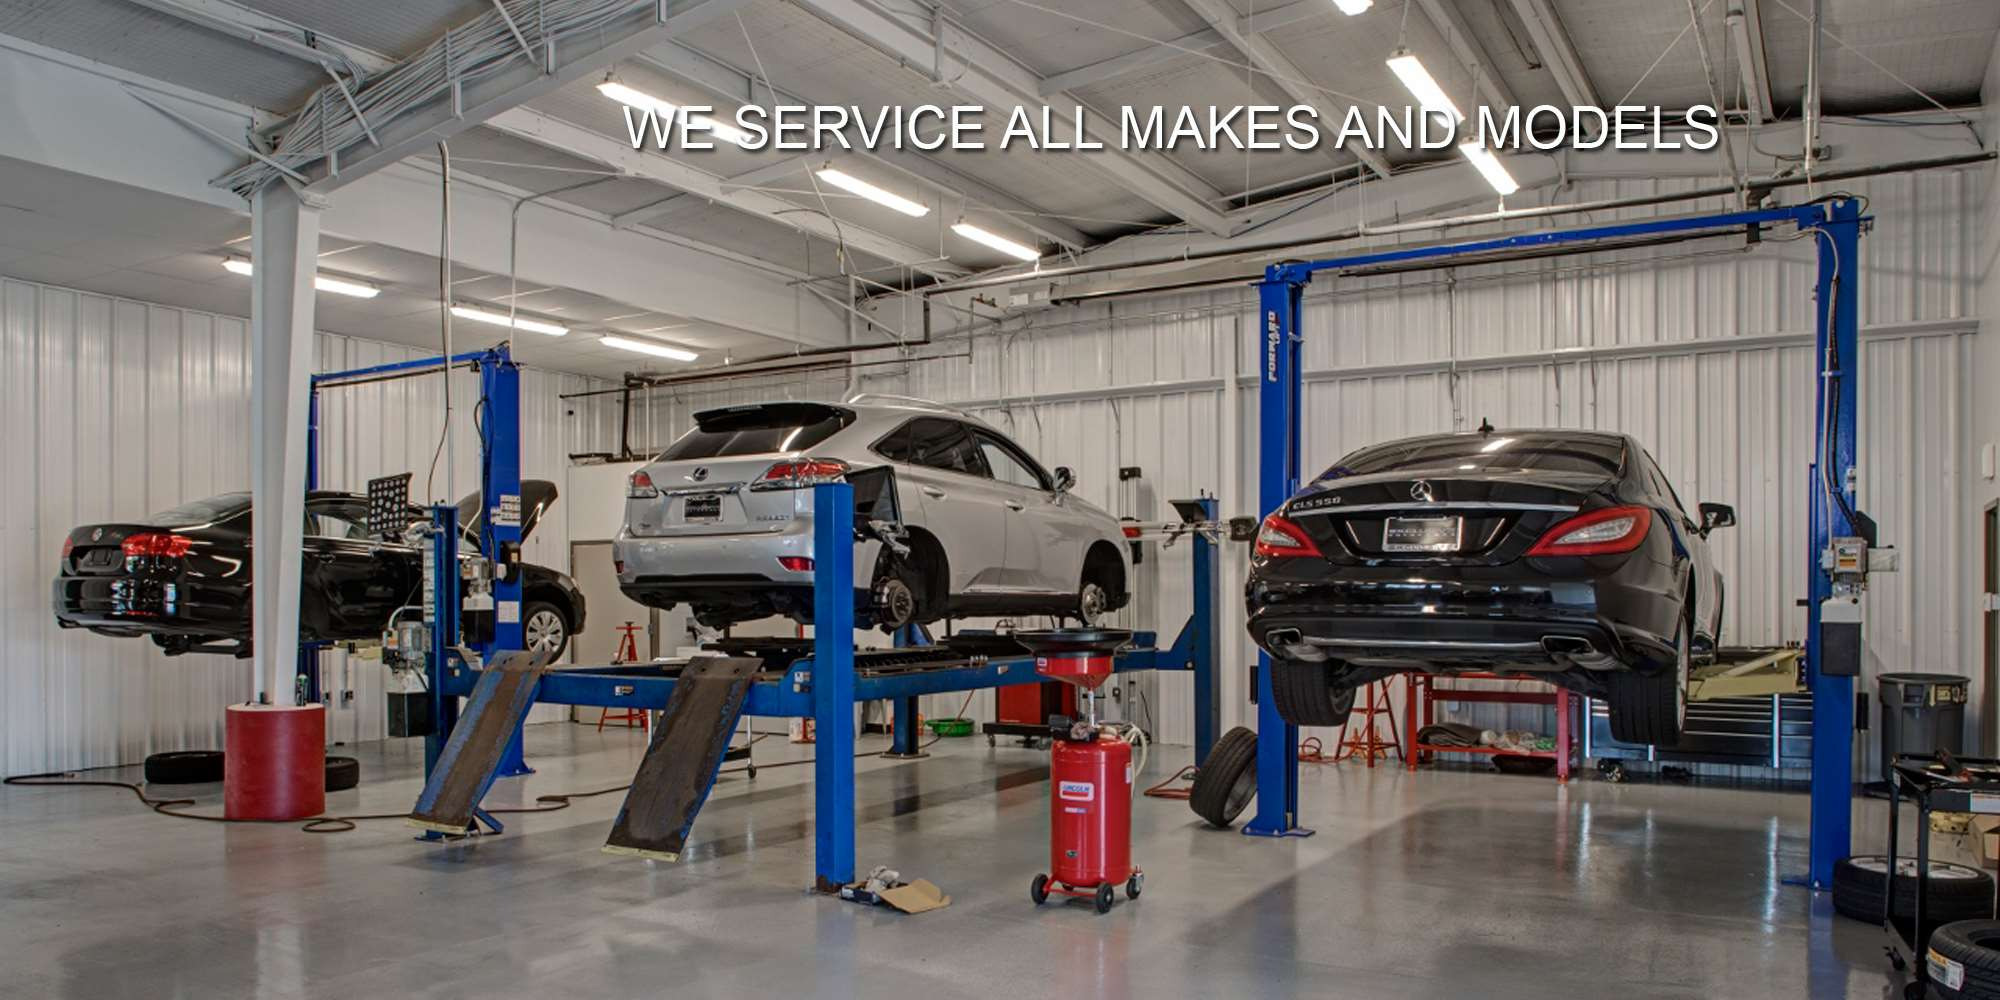 Exclusive Motorcars Baltimore Md Pre Owned Luxury Vehicles Service